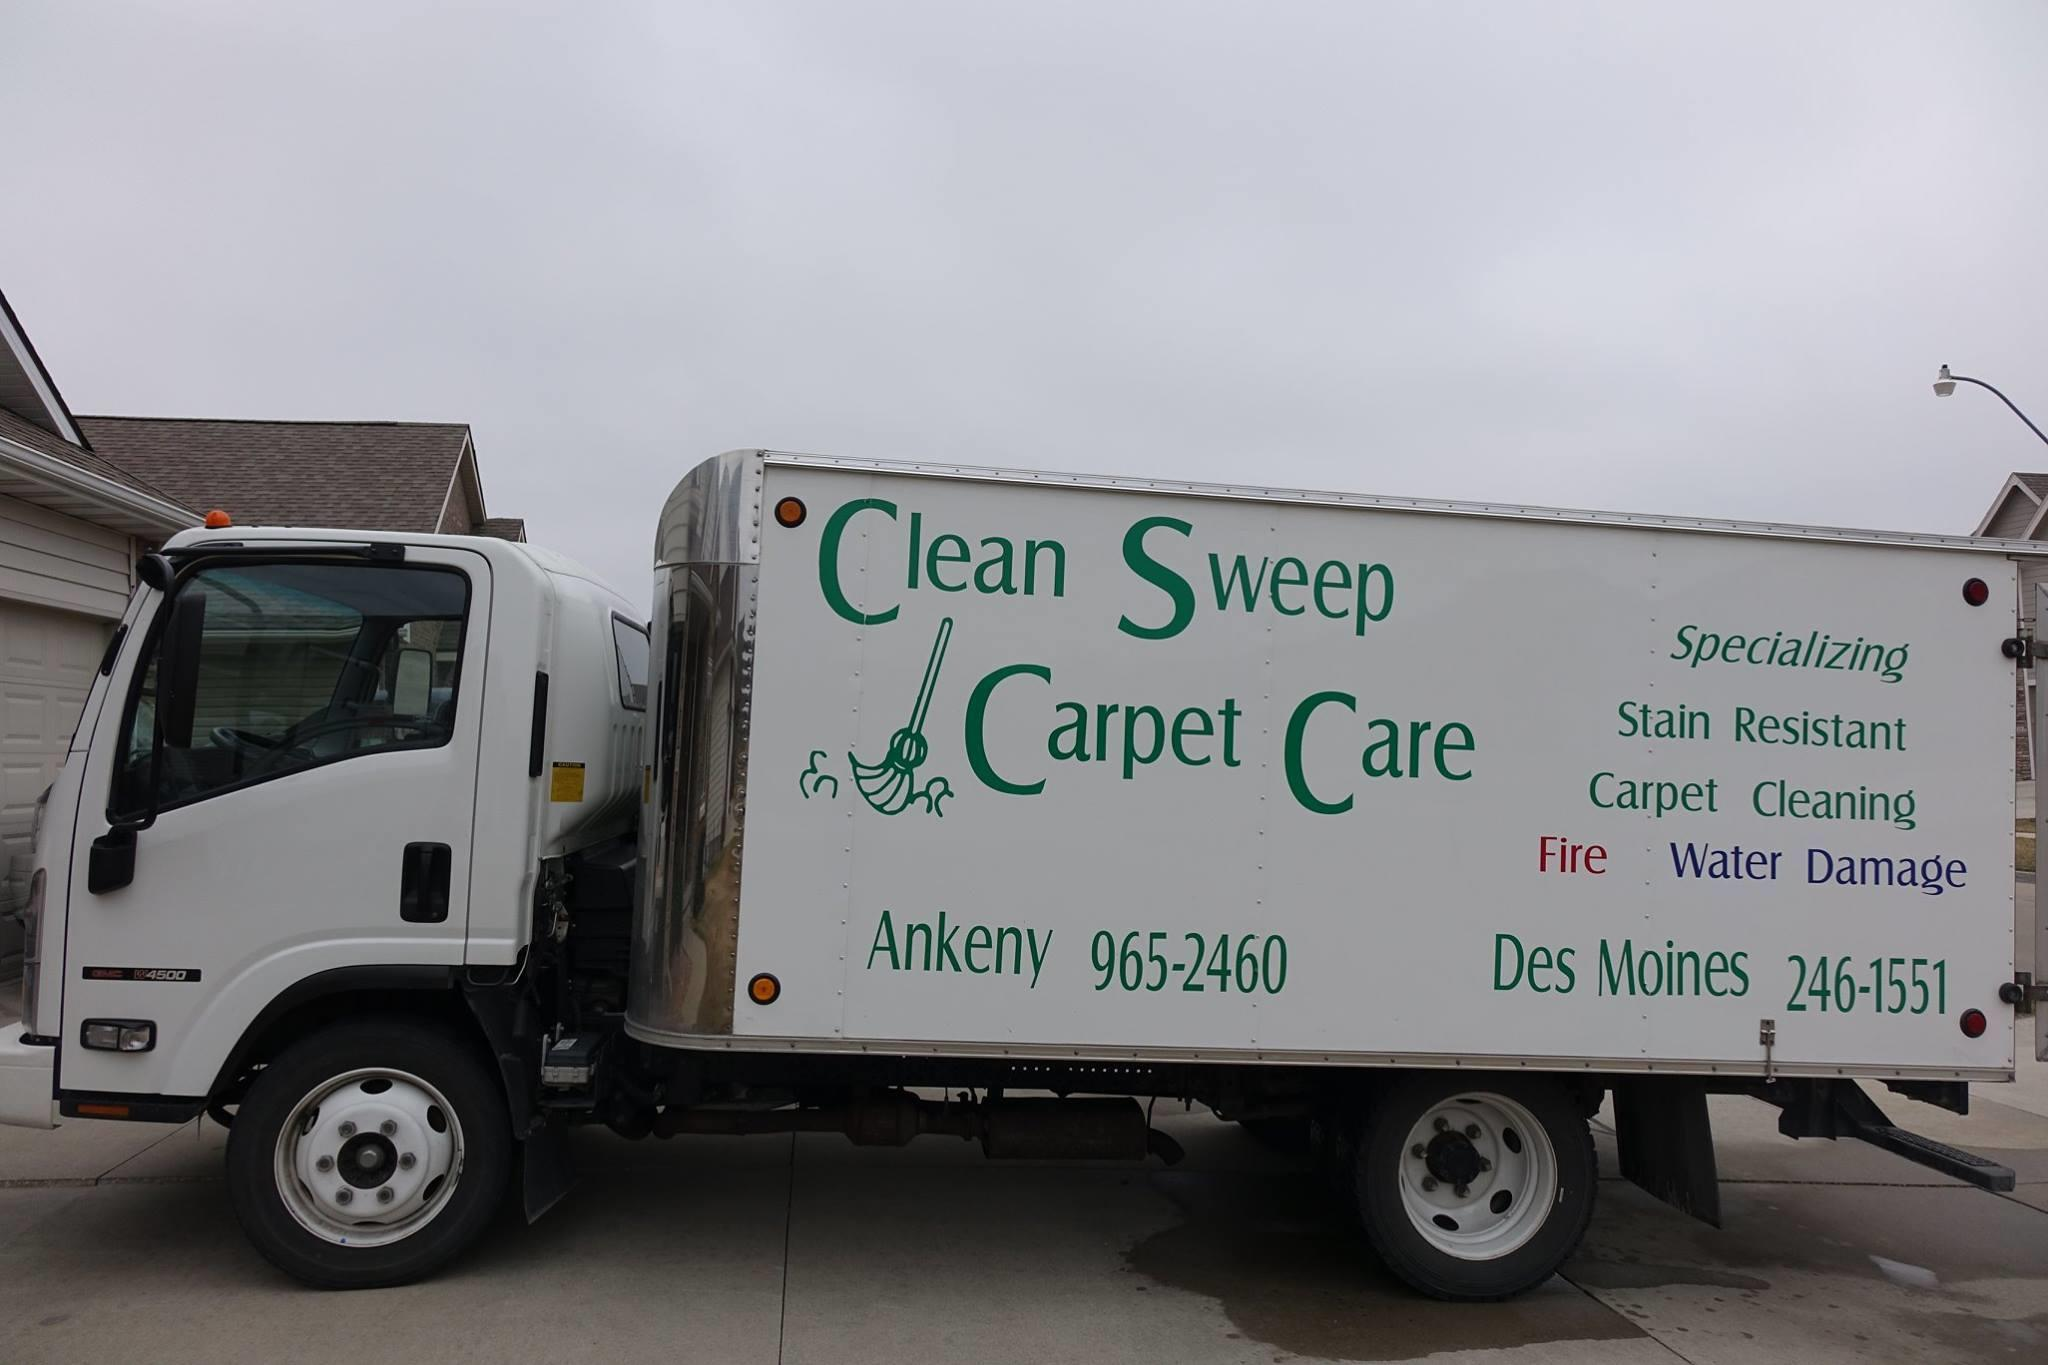 Clean Sweep Carpet Cleaning In Ankeny Ia Home Garden 515 965 2460